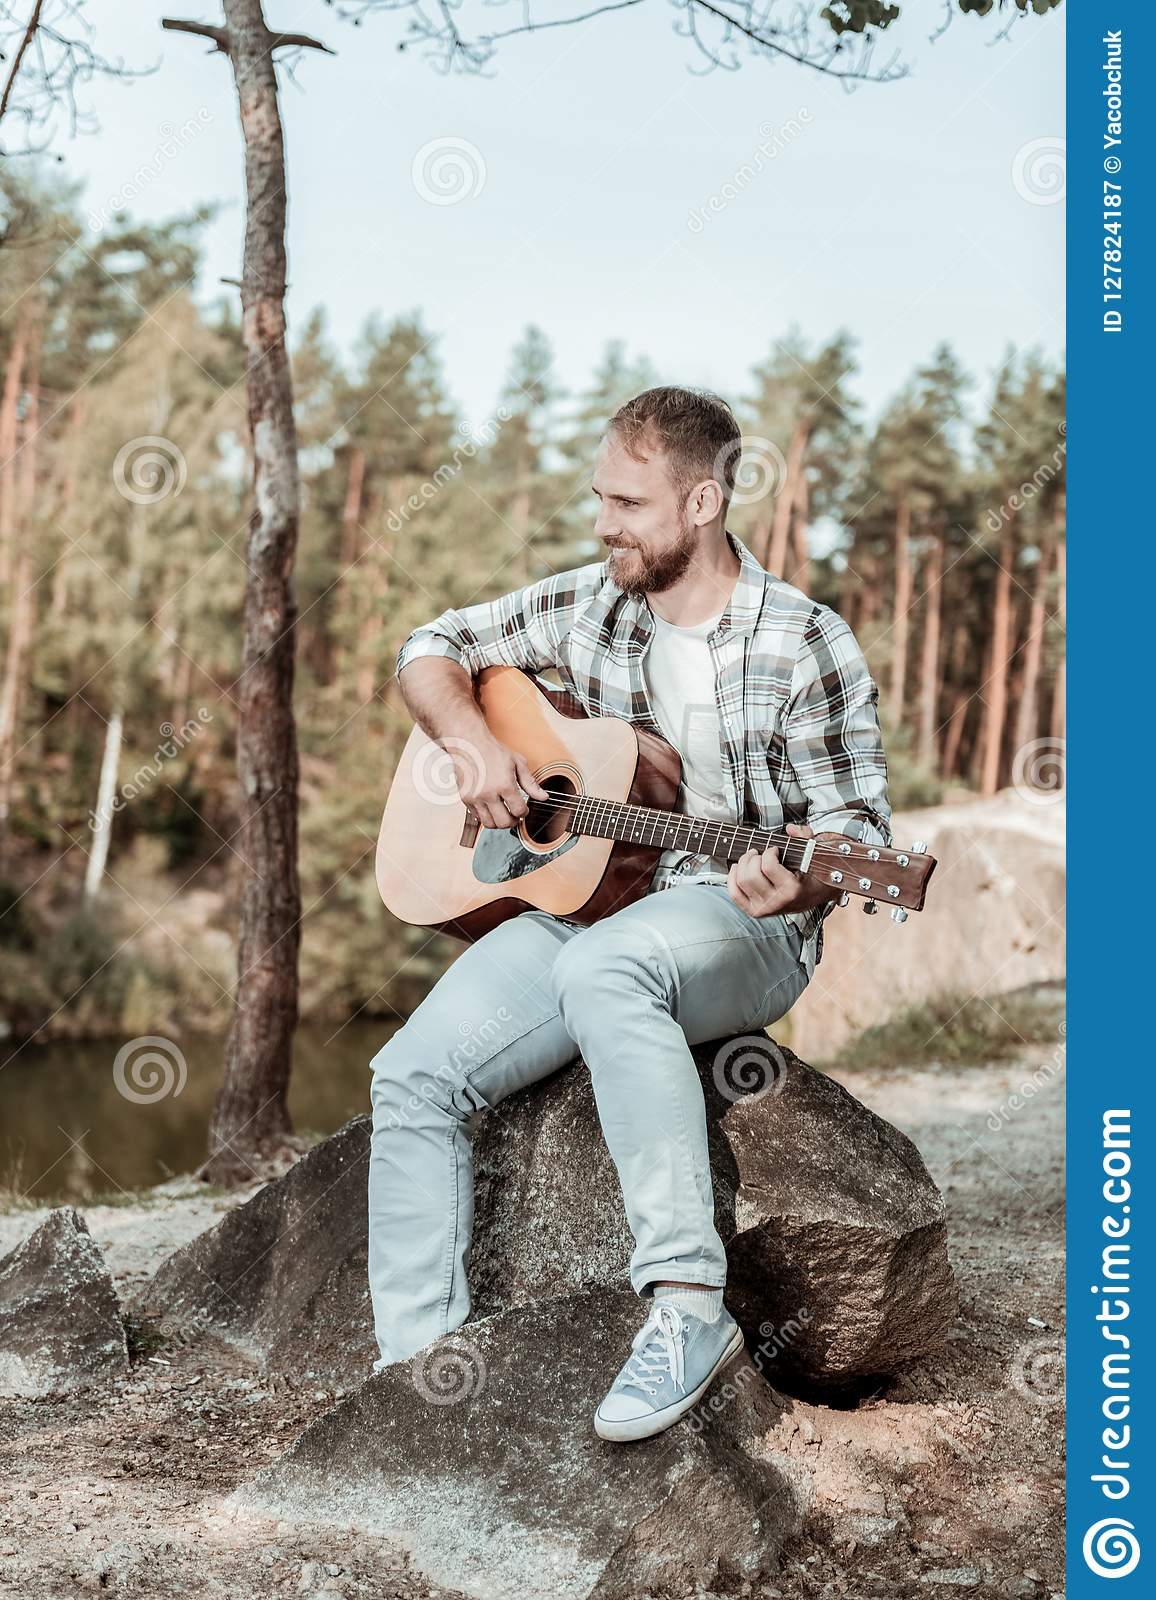 Handsome bearded man wearing jeans and squared shirt playing the guitar near lake